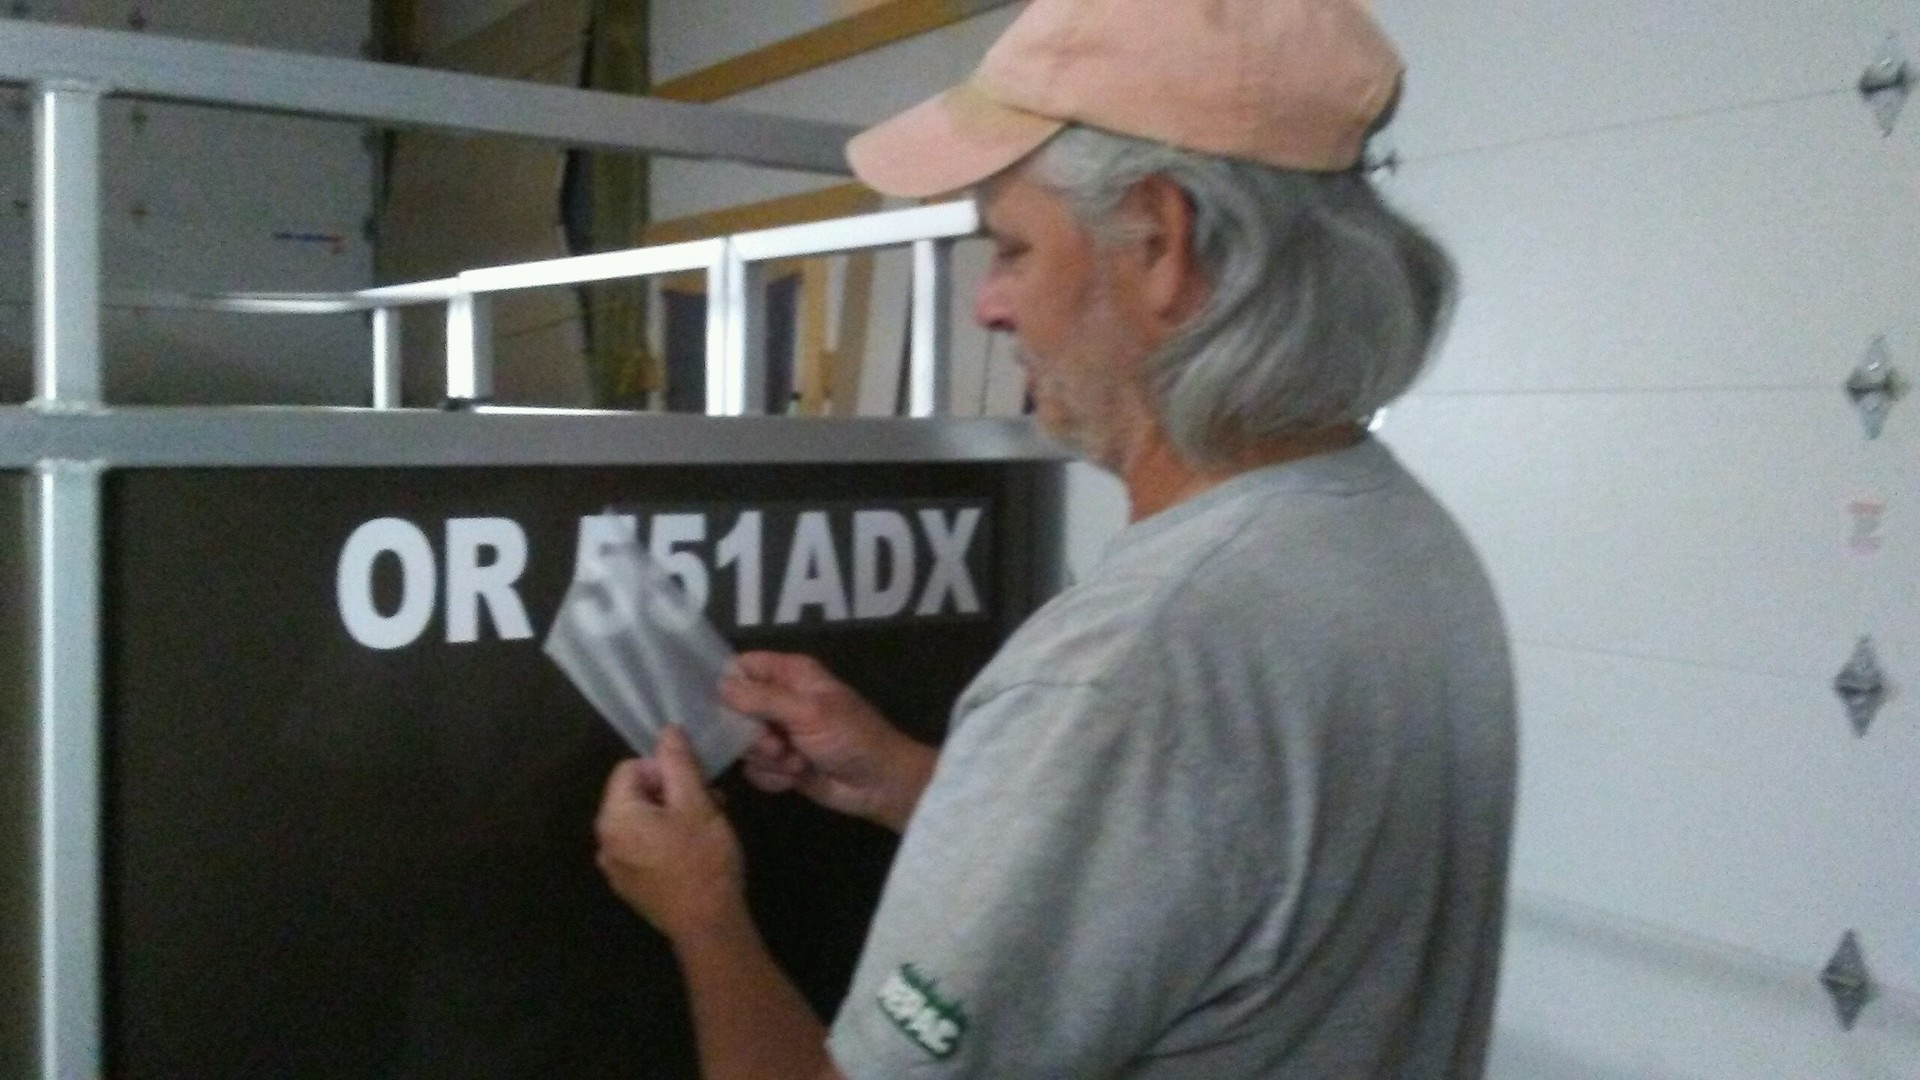 Timothy's photograph of their Boat Registration Number Sticker